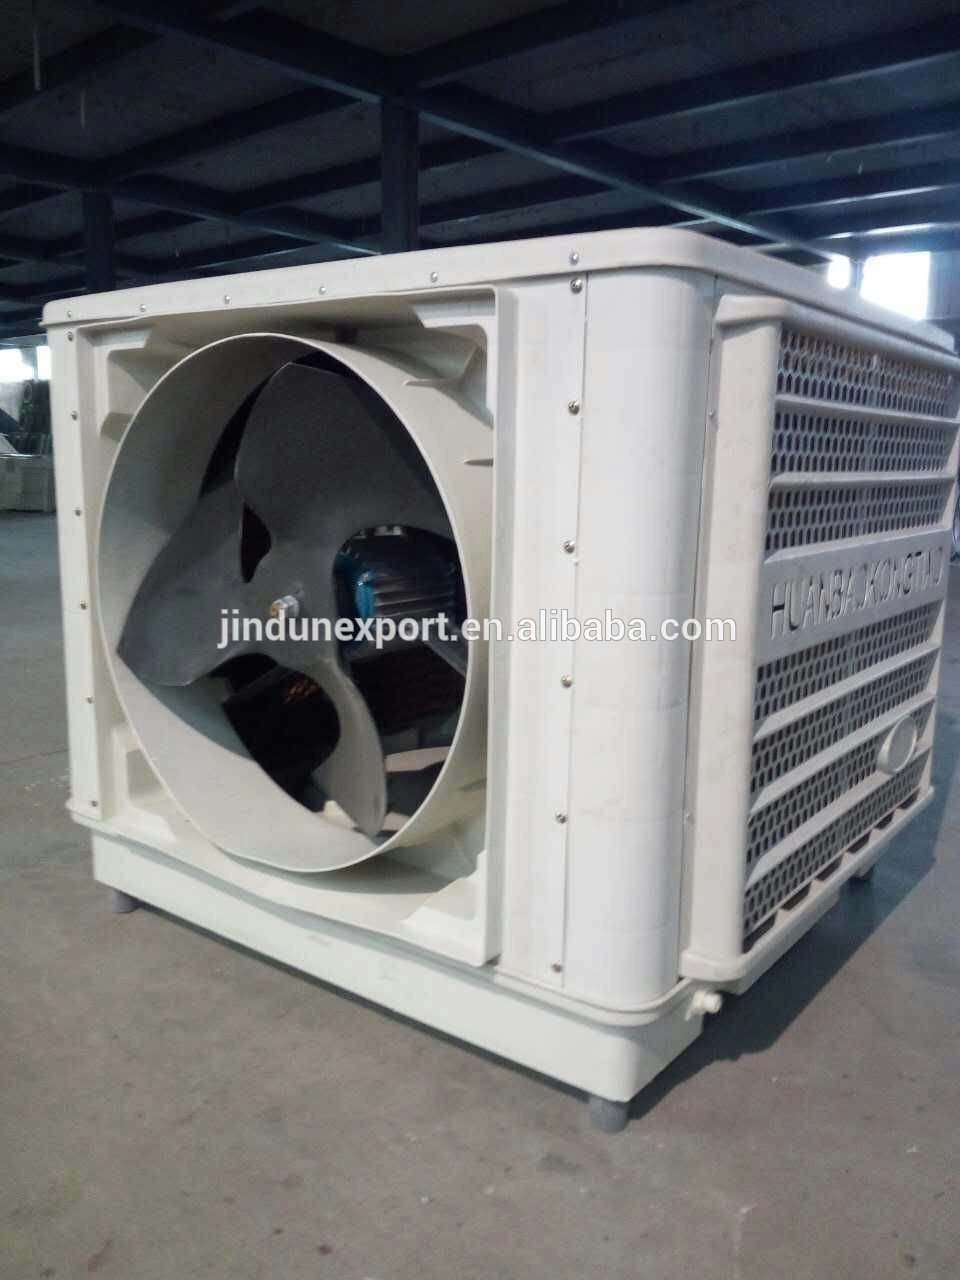 Industrial Evaporative Cooling Systems : Ce approval industrial evaporative air cooler better than